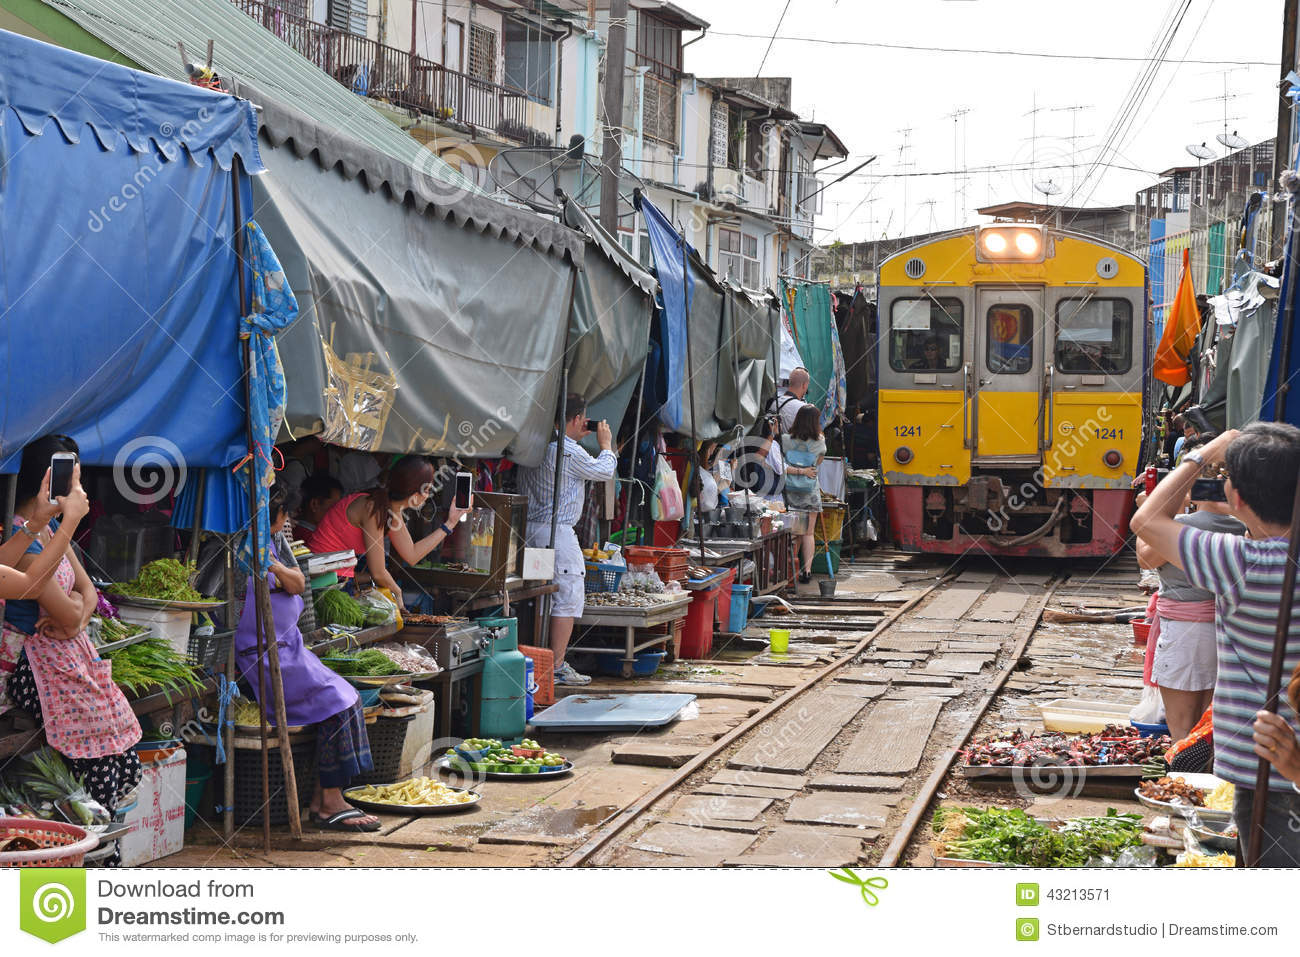 The yellow train has arrived while people are taking pictures and videos at Maeklong Railway Market.